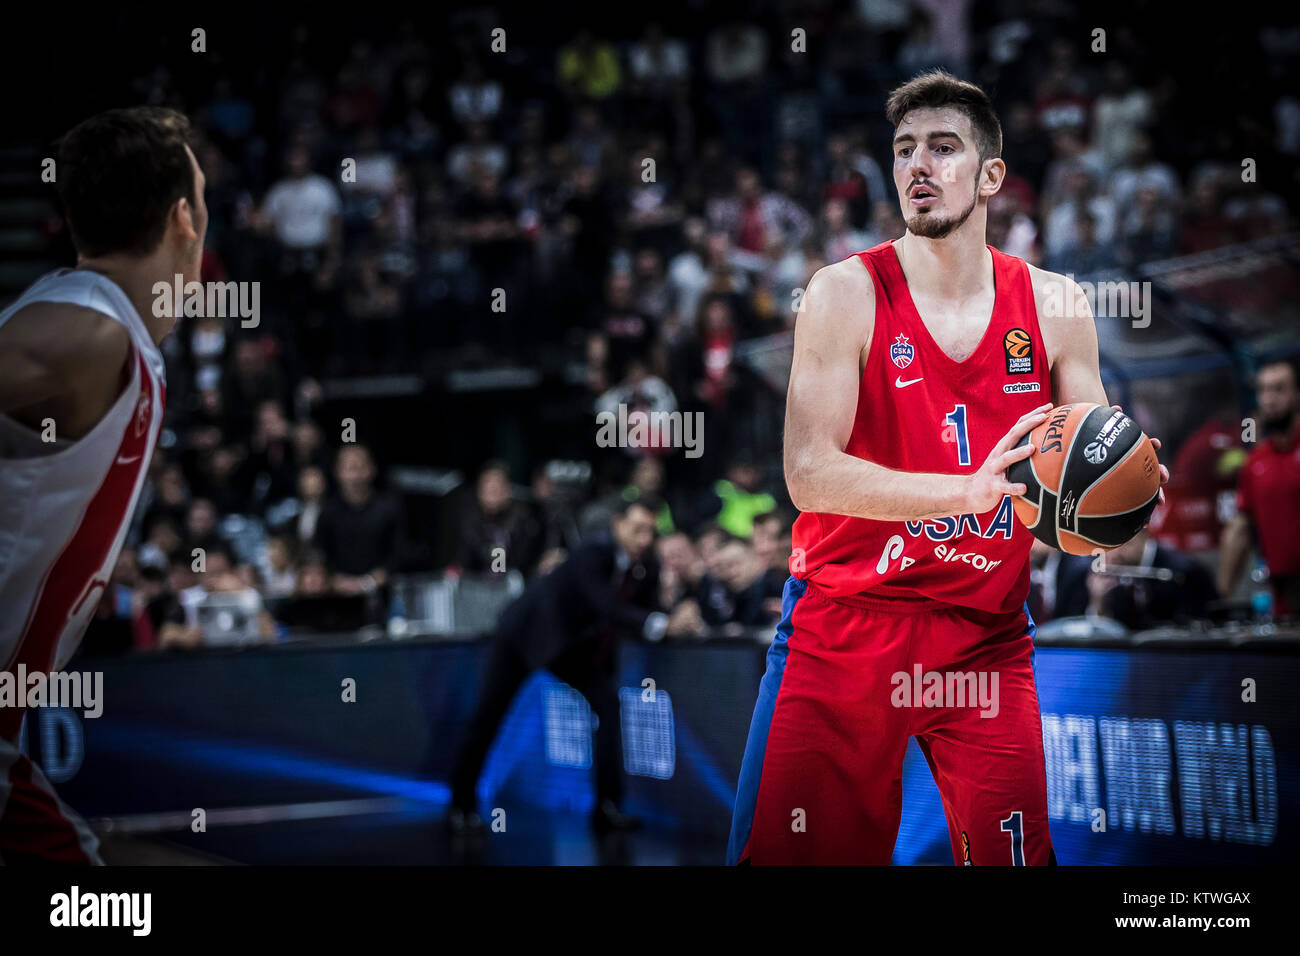 Guard Nando De Colo of CSKA Moscow with a ball during the match - Stock Image